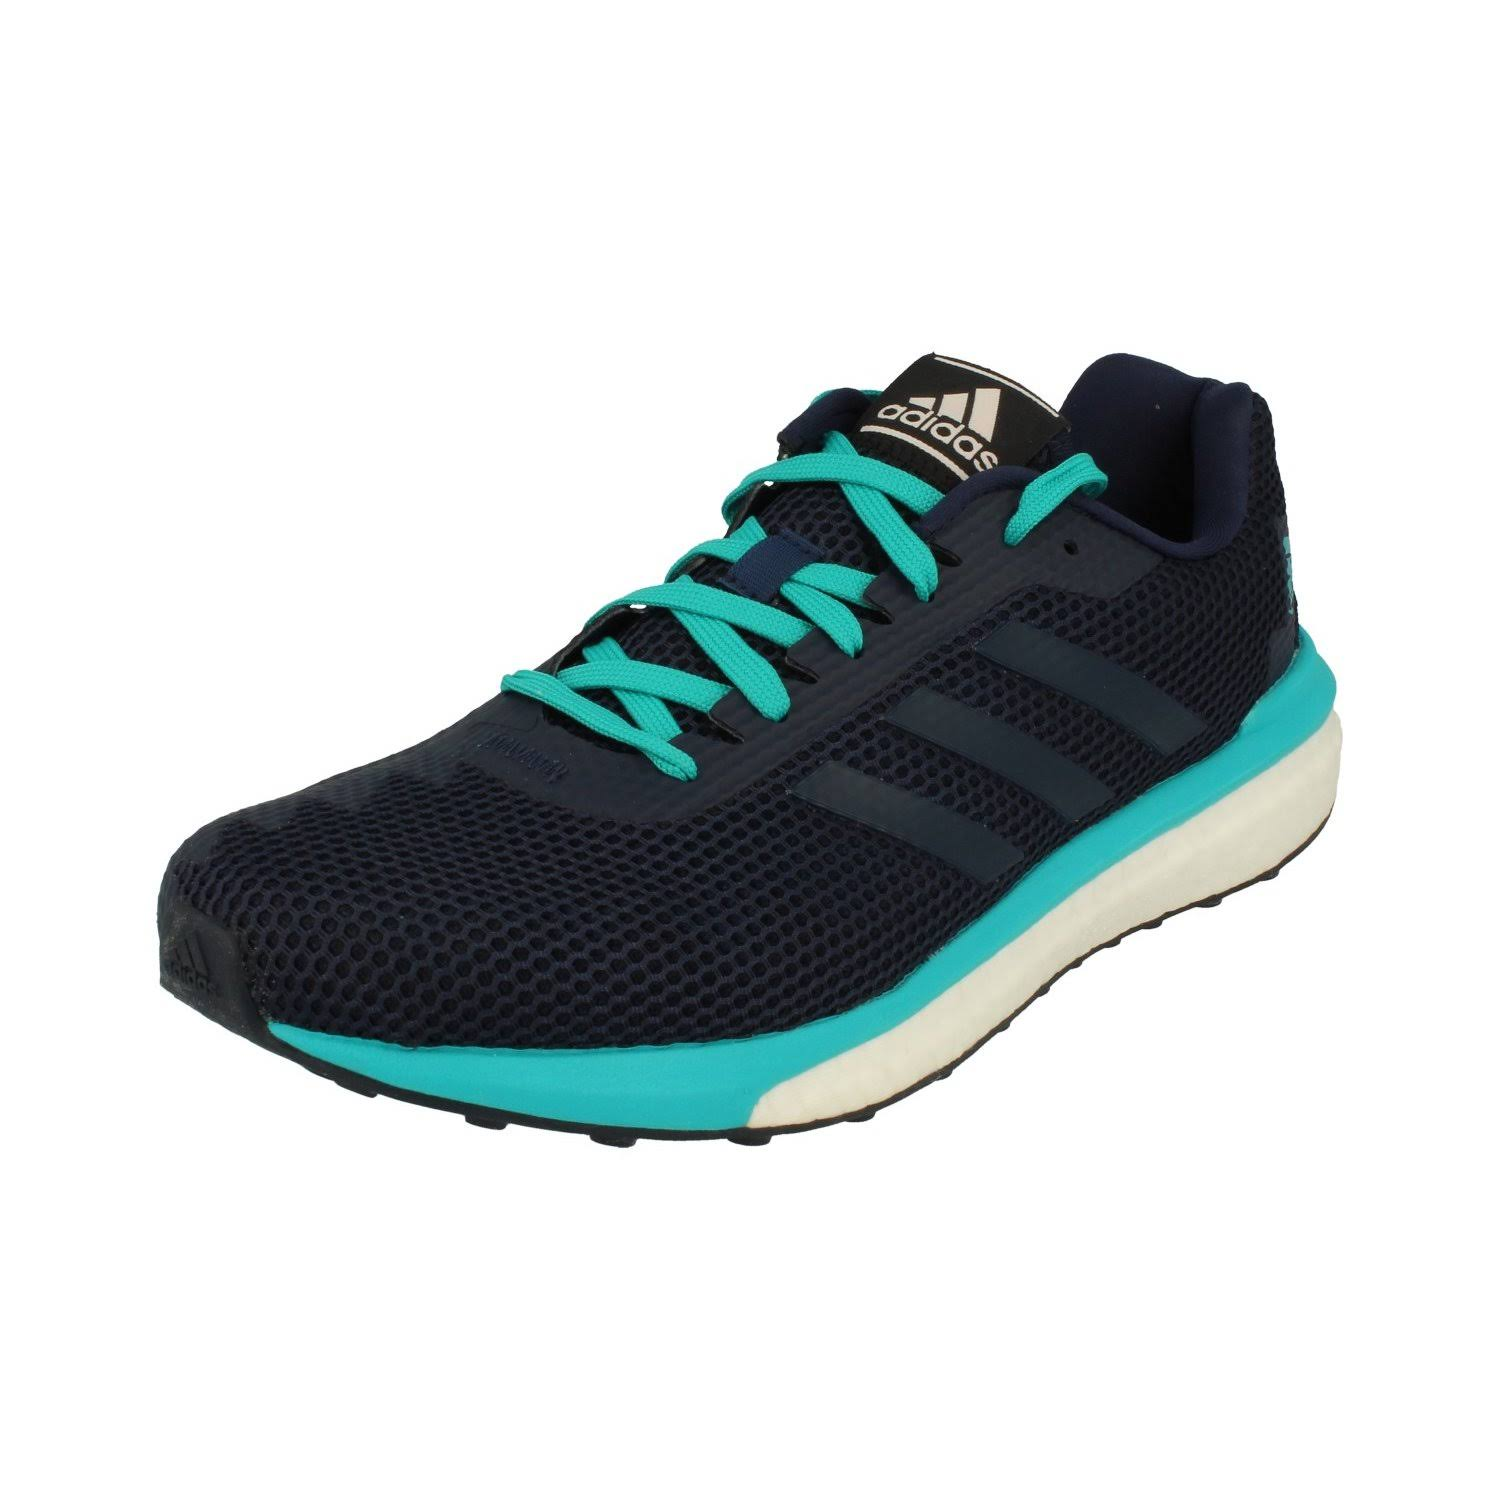 (8) Adidas Vengeful Mens Running Trainers Sneakers